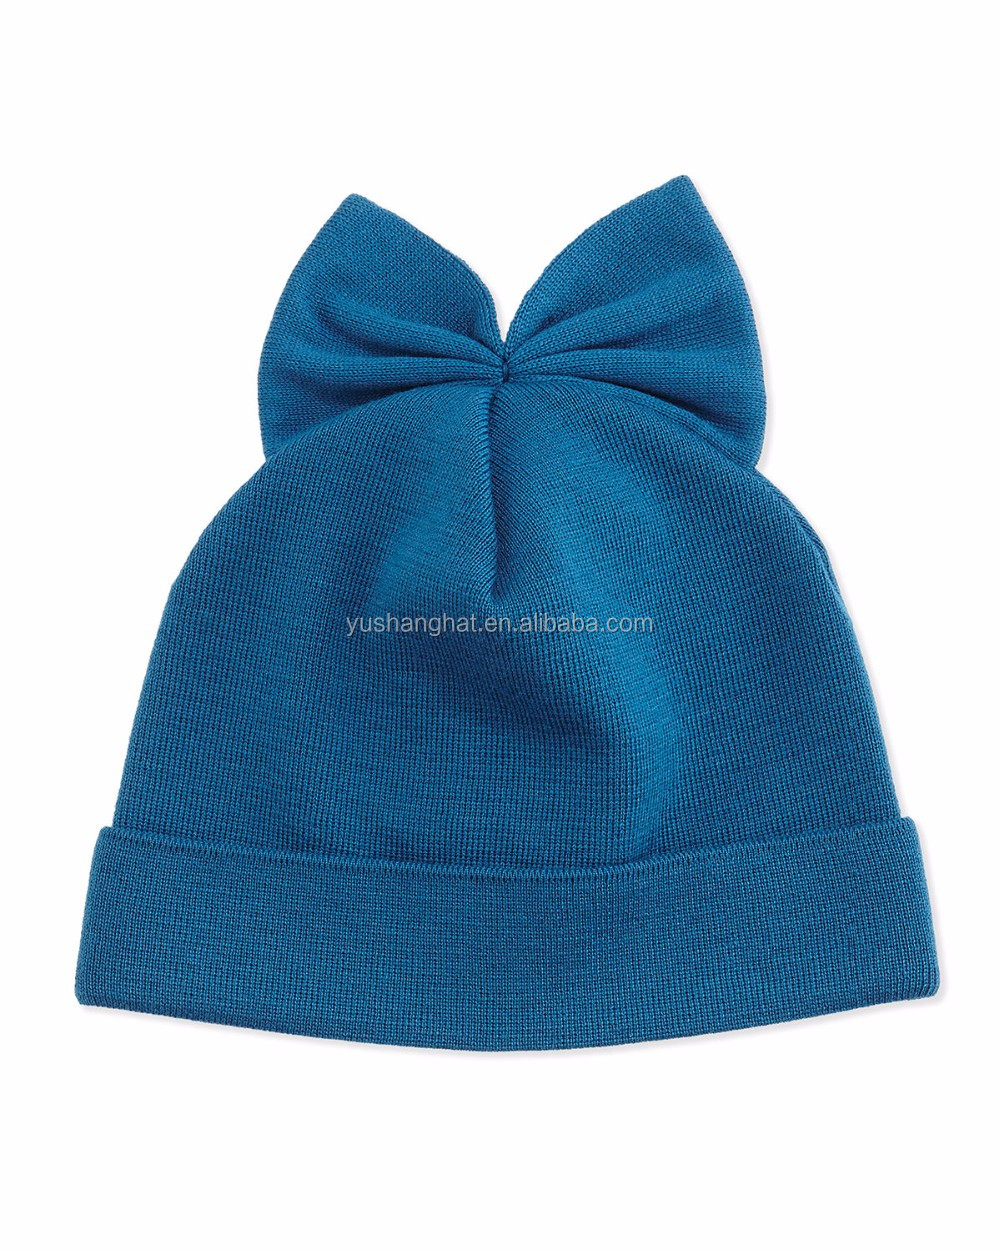 China factory various color girl cute beanie with bowtie for sell